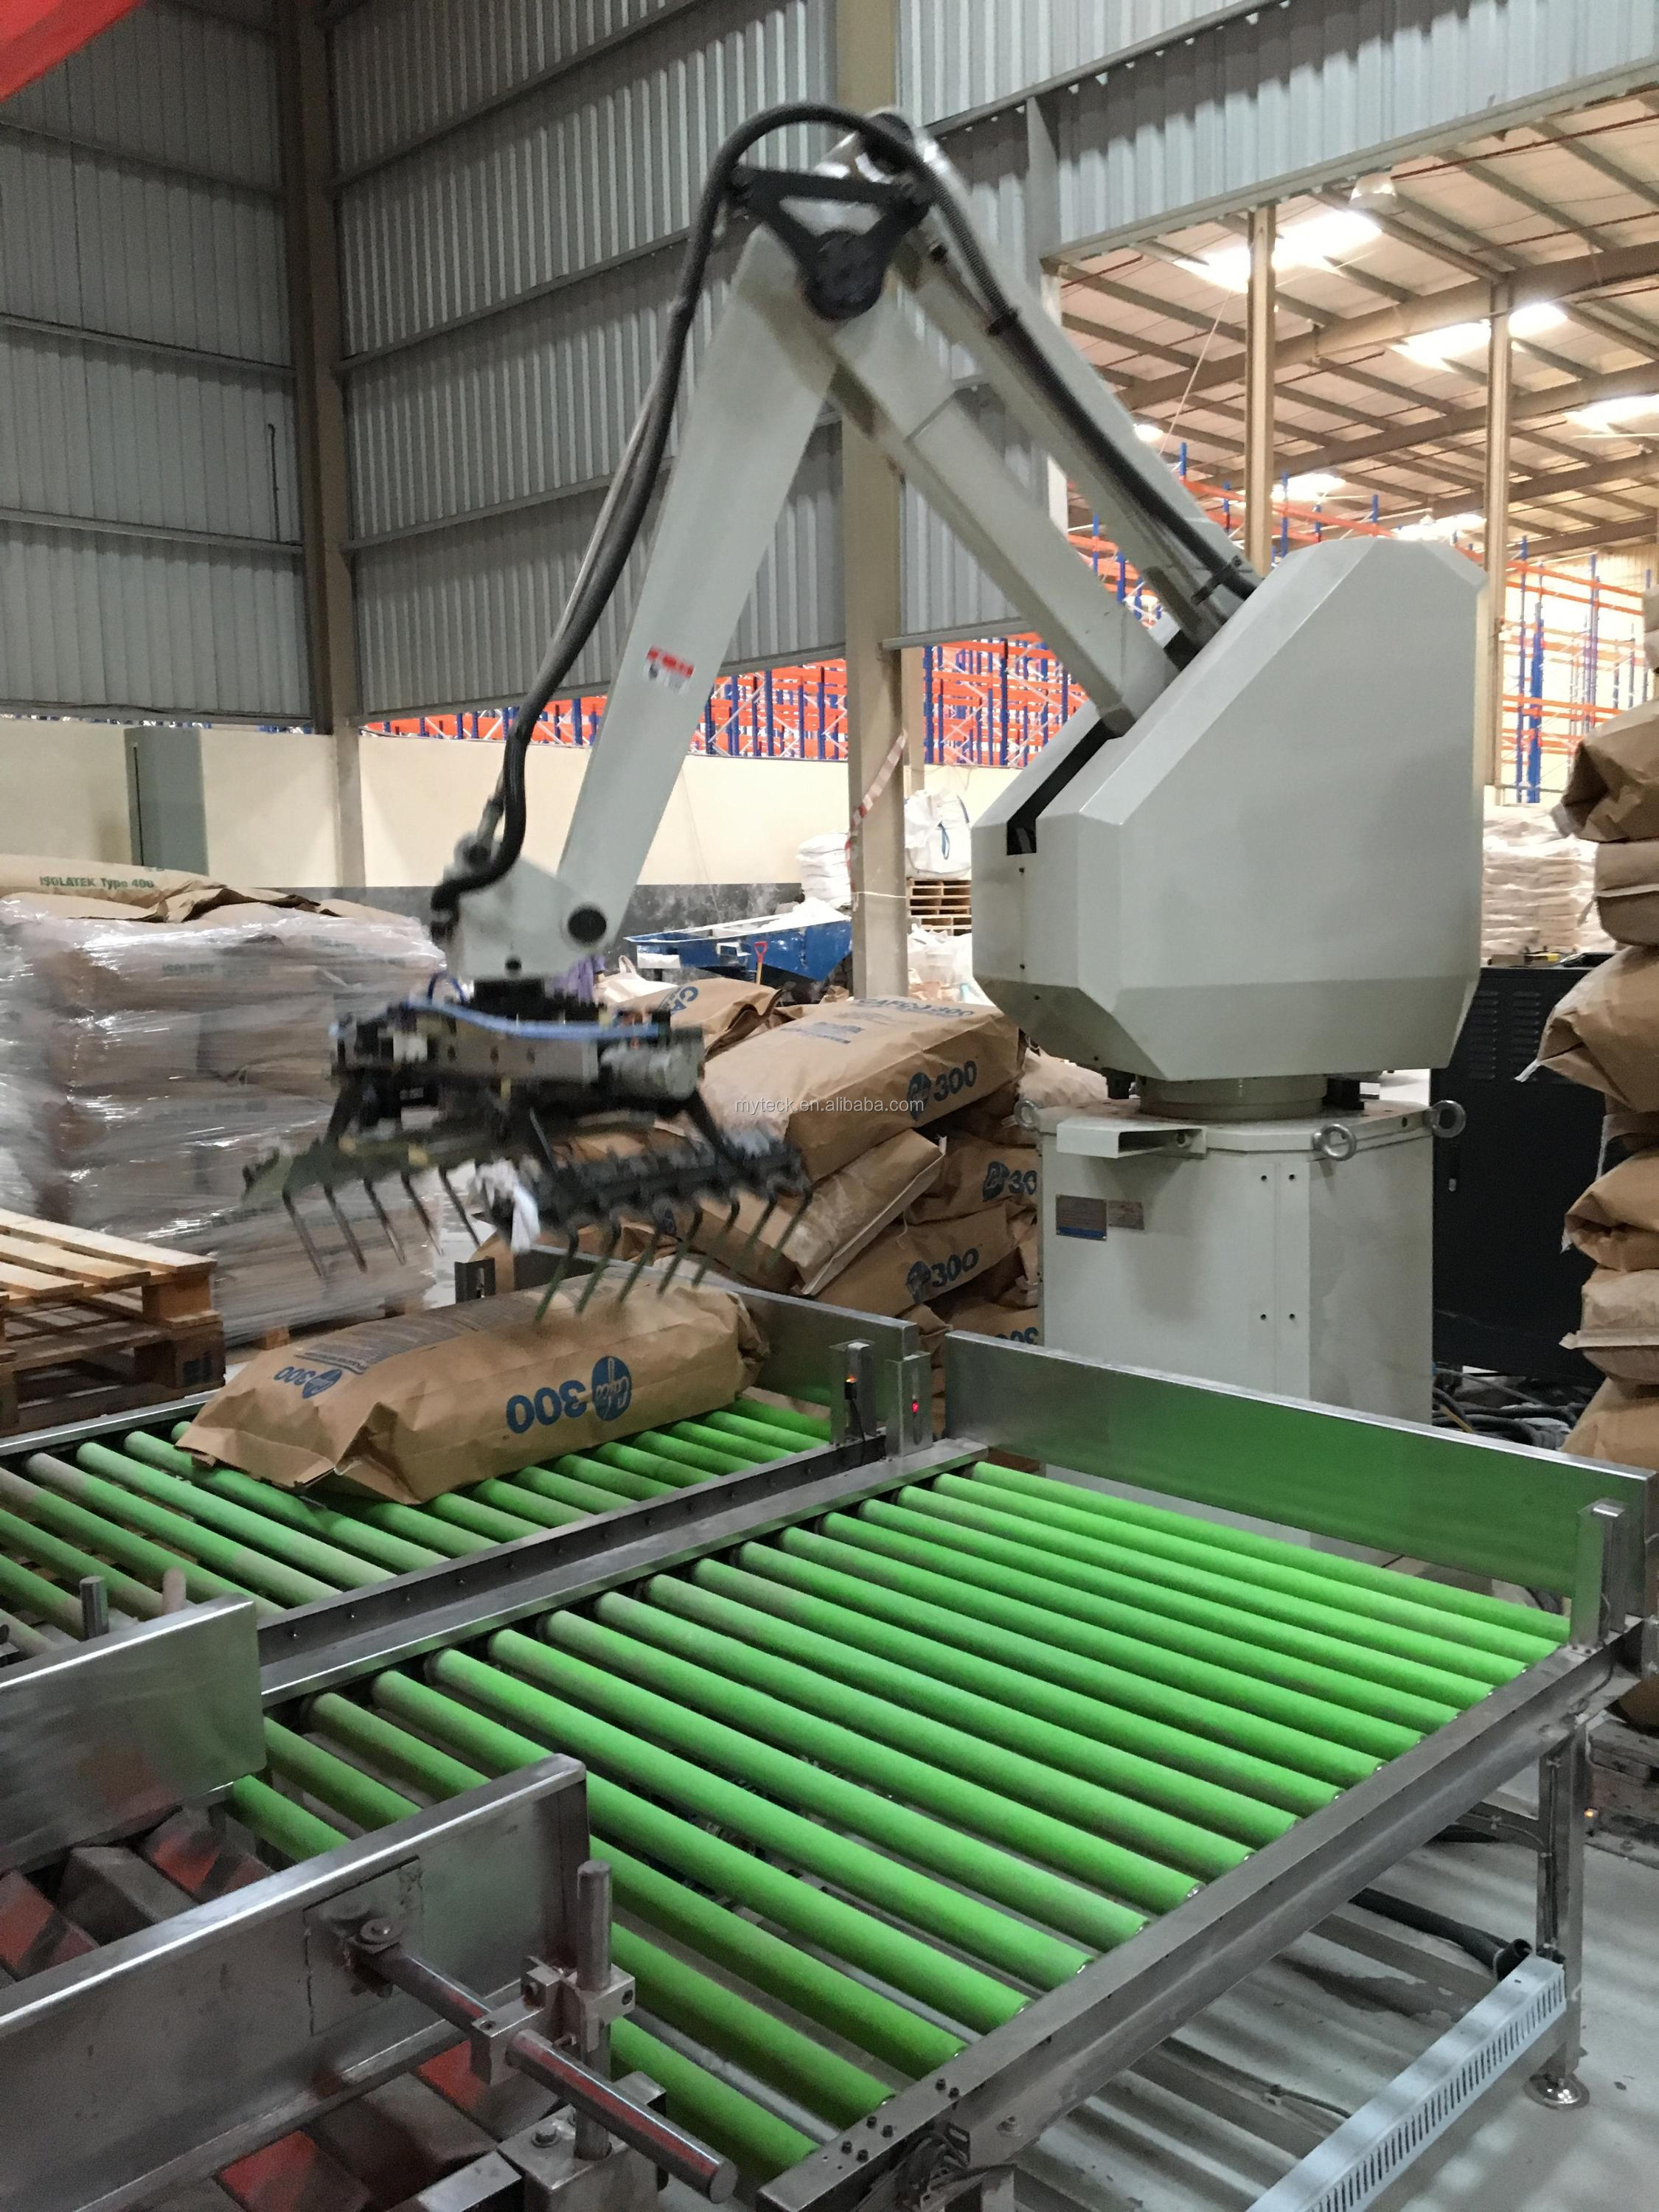 Automatic Robot palletizing stacking machine/ palletizer price Guangzhou China